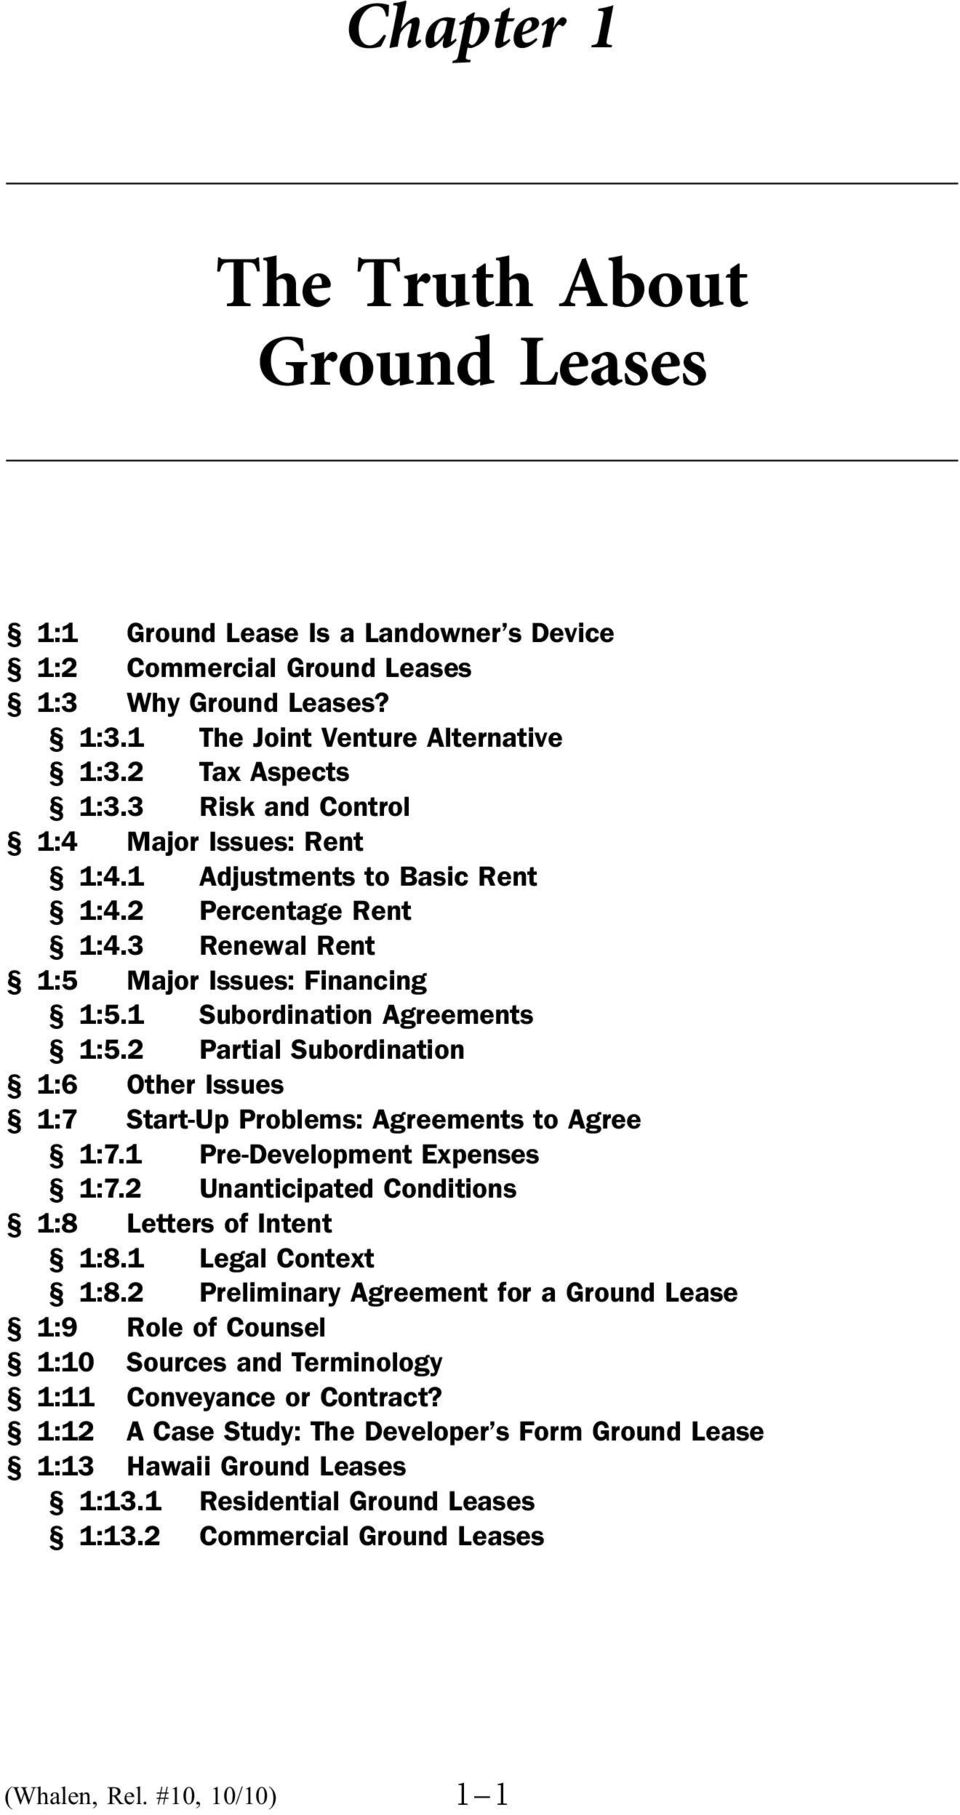 The Truth About Ground Leases Pdf